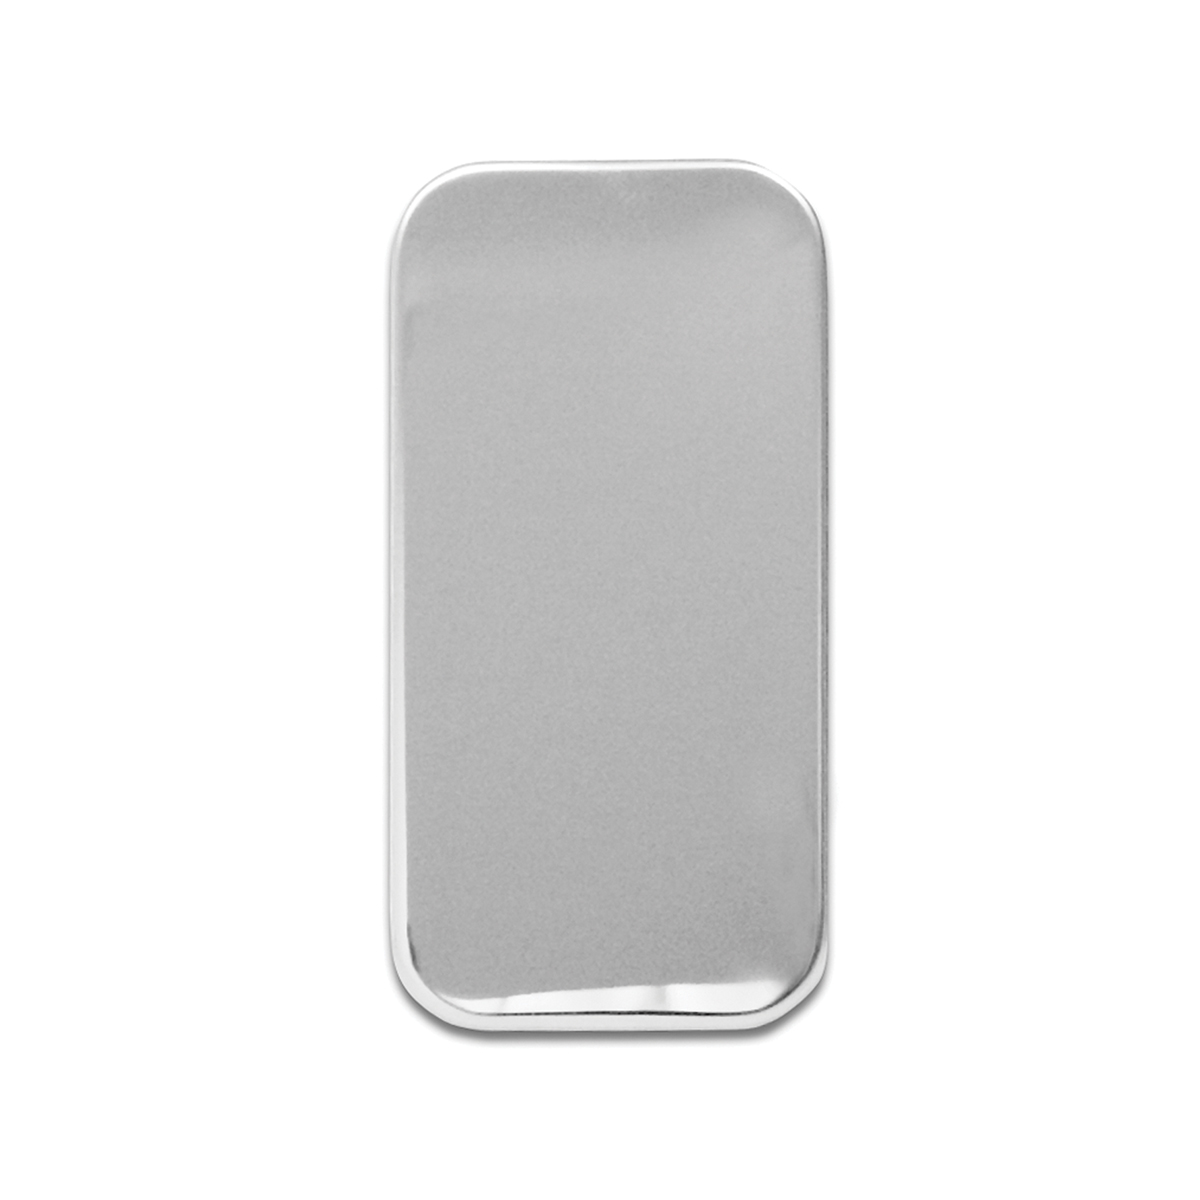 97560 Stainless Steel Exterior Vent Door Cover for Freightliner